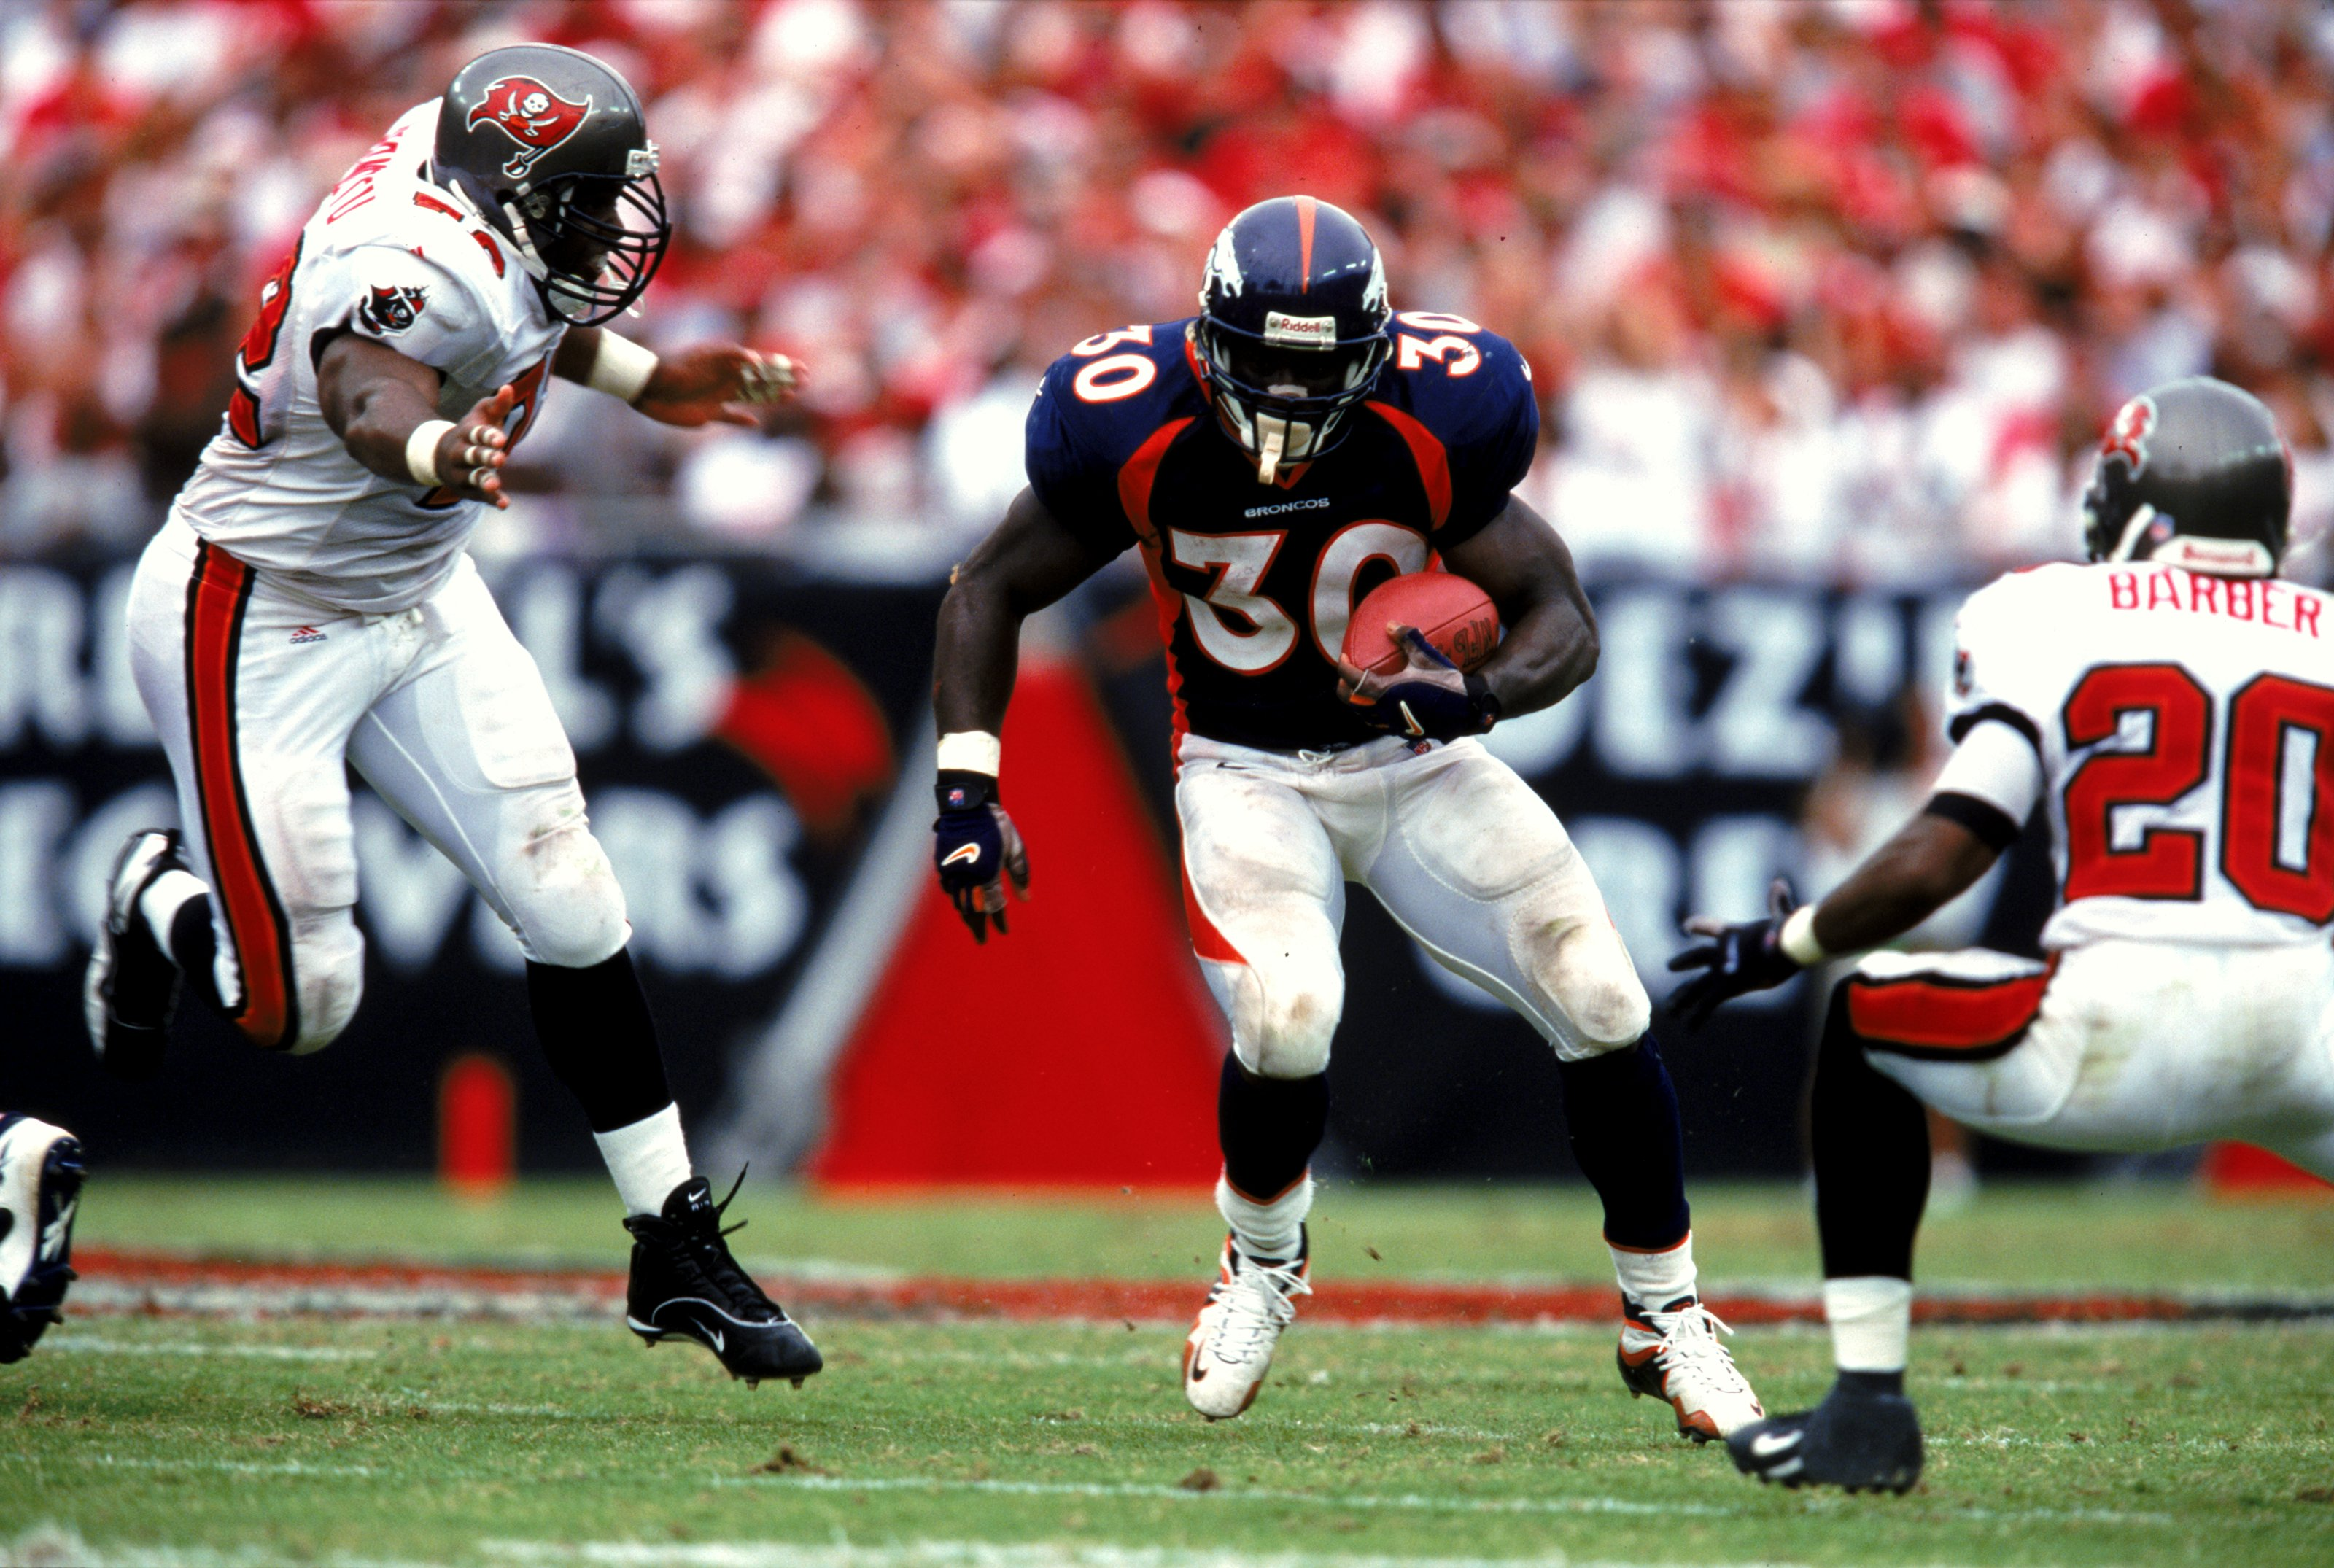 26 Sep 1999: Terrell Davis #30 of the Denver Broncos carries the ball during the game against the Tampa Bay Buccaneers at the Raymond James Stadium in Tampa Bay, Florida. The Buccaneers defeated the Broncos 13-10. Mandatory Credit: Andy Lyons  /Allsport